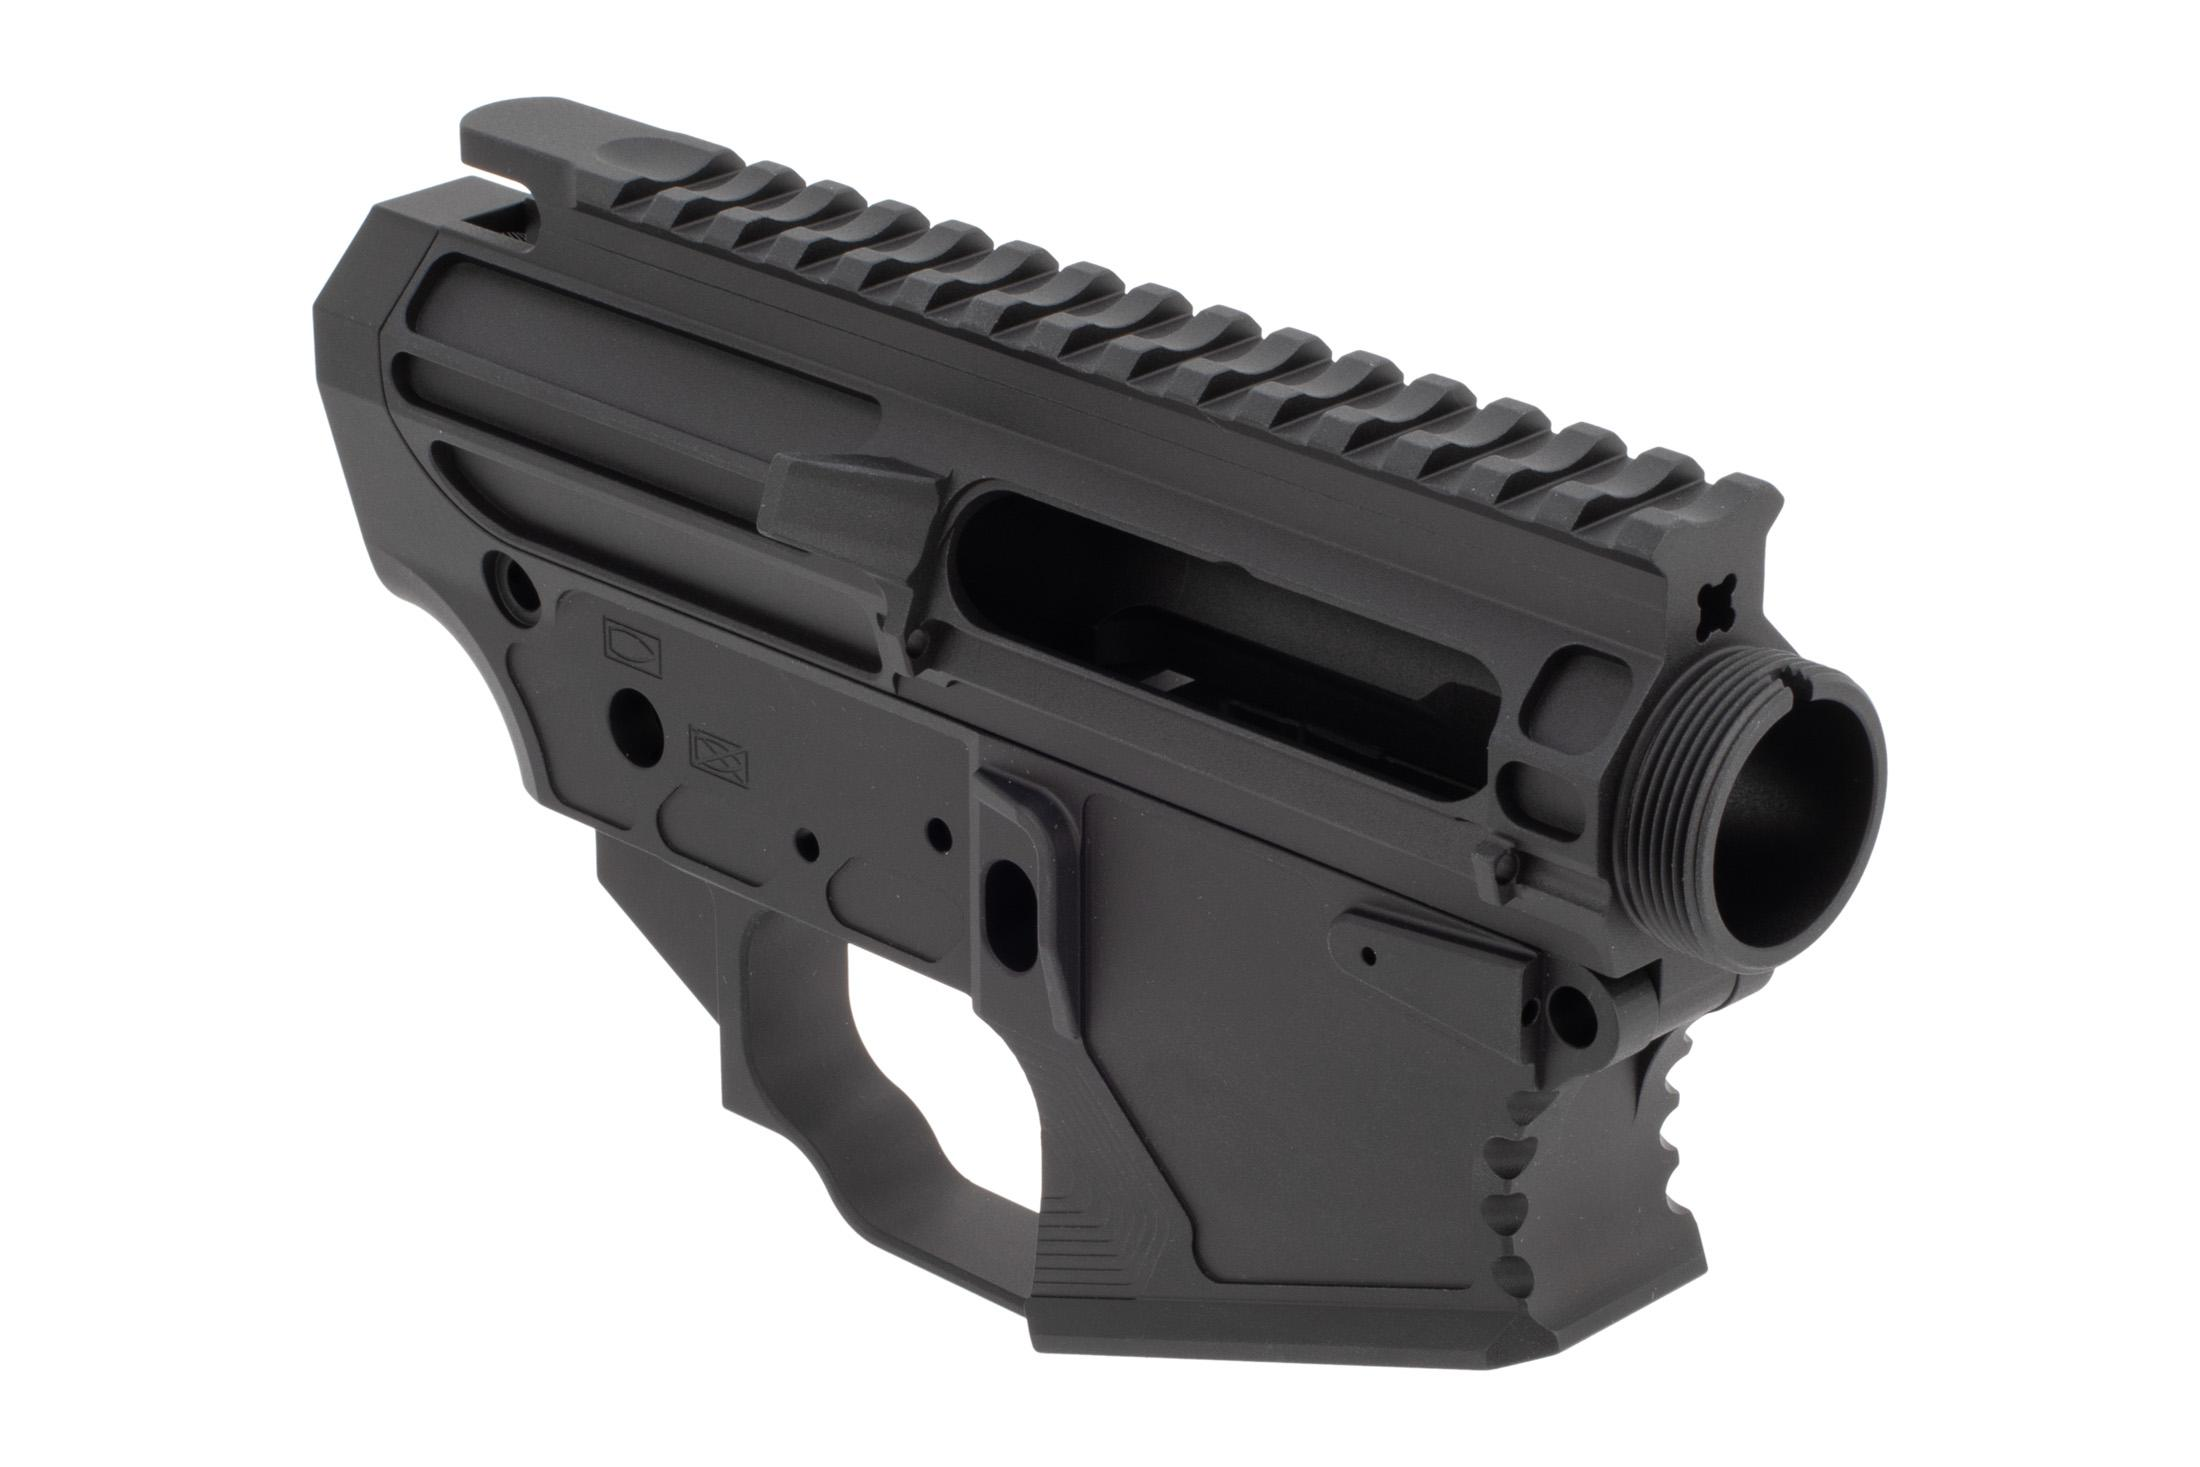 The Next Level Armament NLX Fifteen receiver set features a flat top picatinny rail